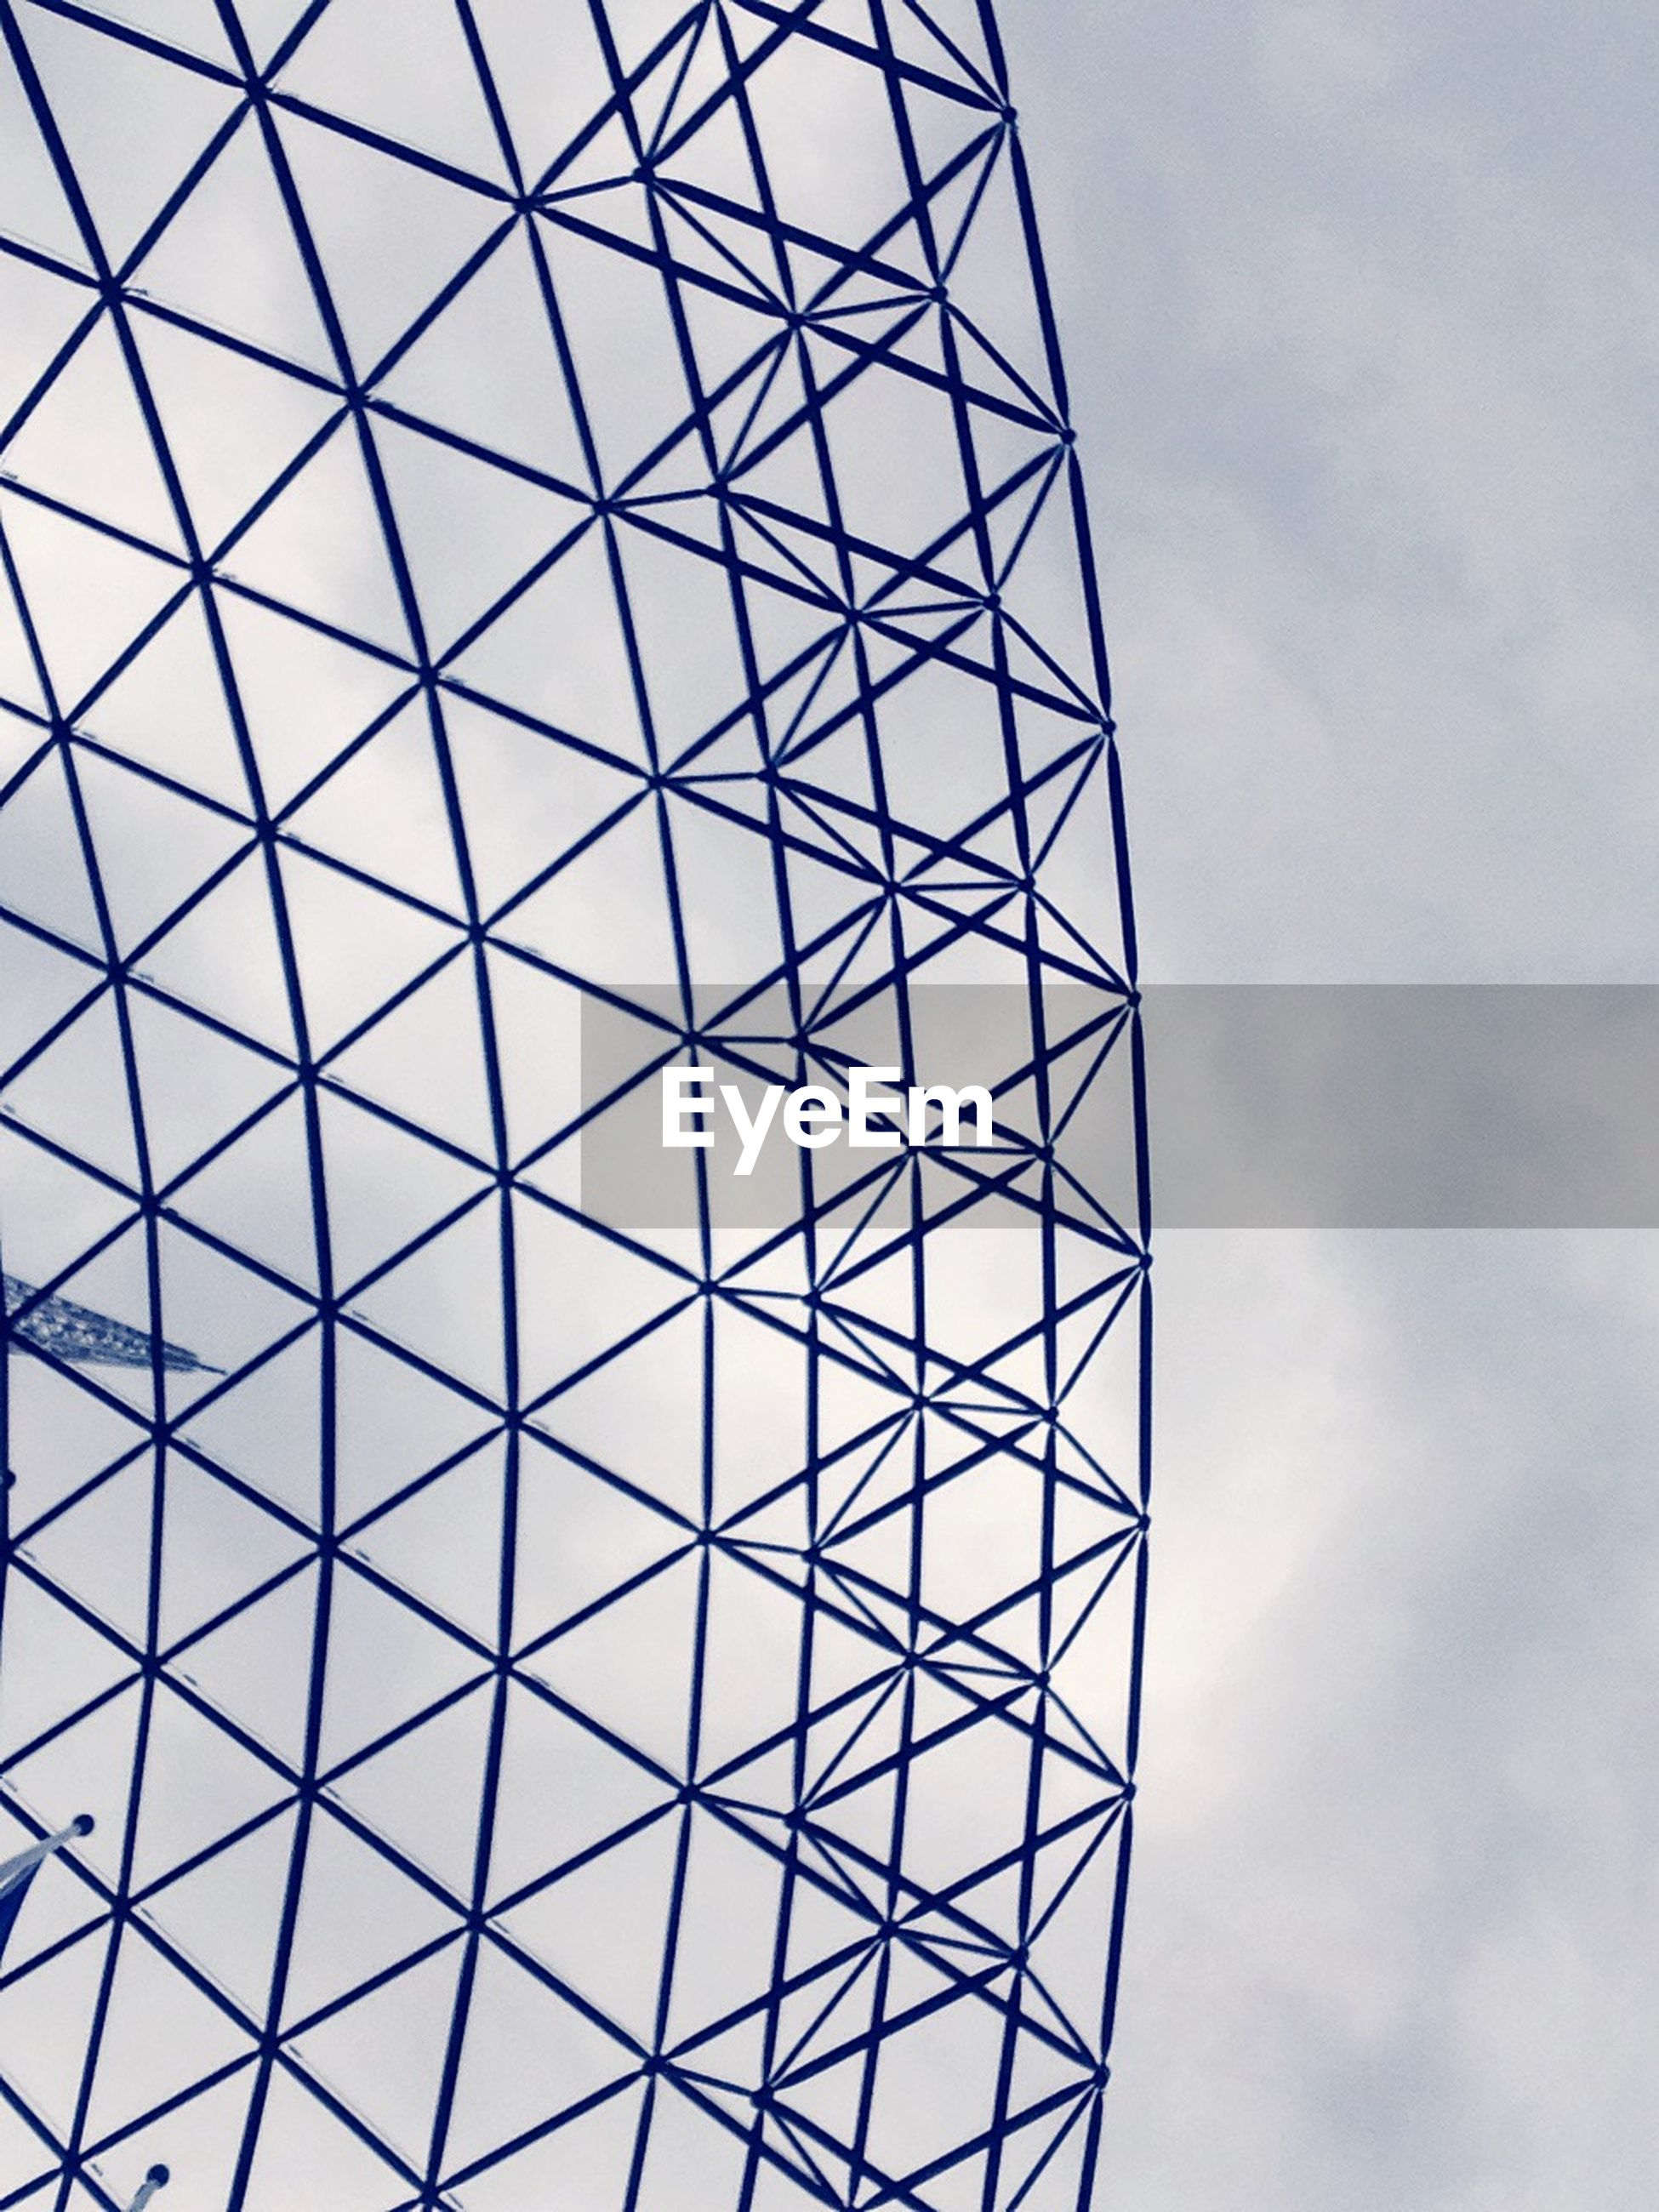 low angle view, built structure, sky, architecture, pattern, tall - high, tower, grid, full frame, cloud - sky, directly below, backgrounds, glass - material, modern, geometric shape, day, design, metal, no people, architectural feature